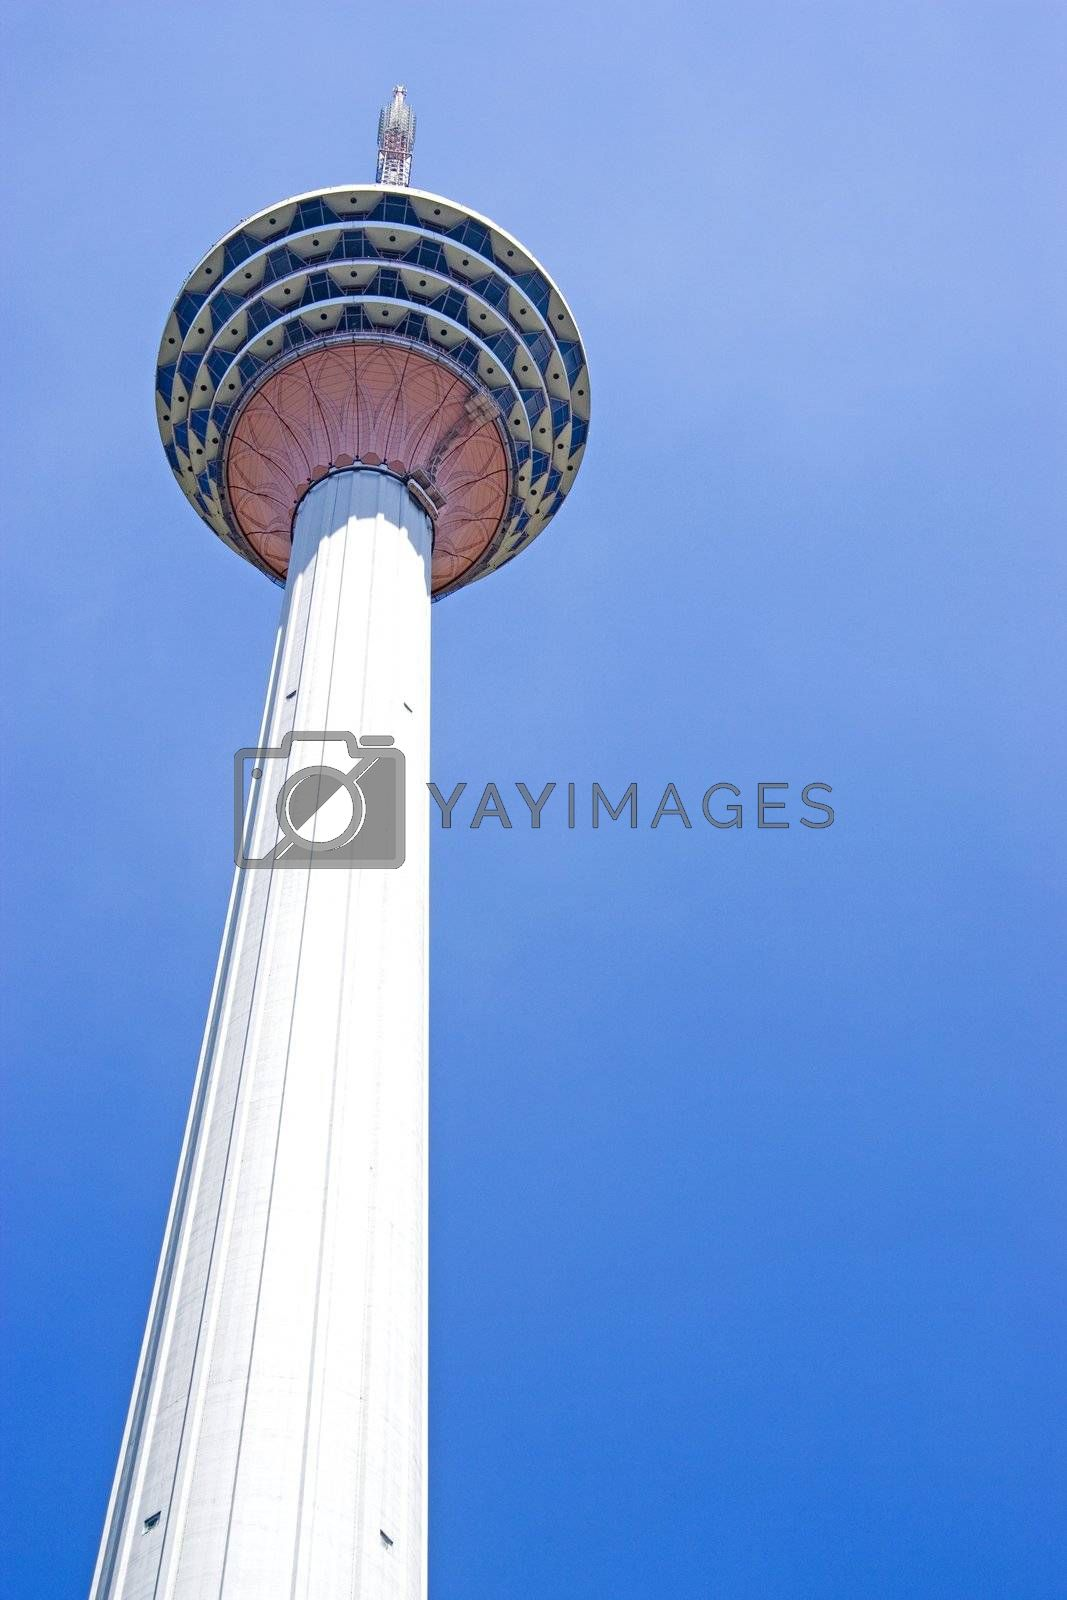 Image of a Kuala Lumpur Tower located in Malaysia. This is a communications tower with a viewing gallery and restaurant right at the top. An important landmark of Kuala Lumpur.